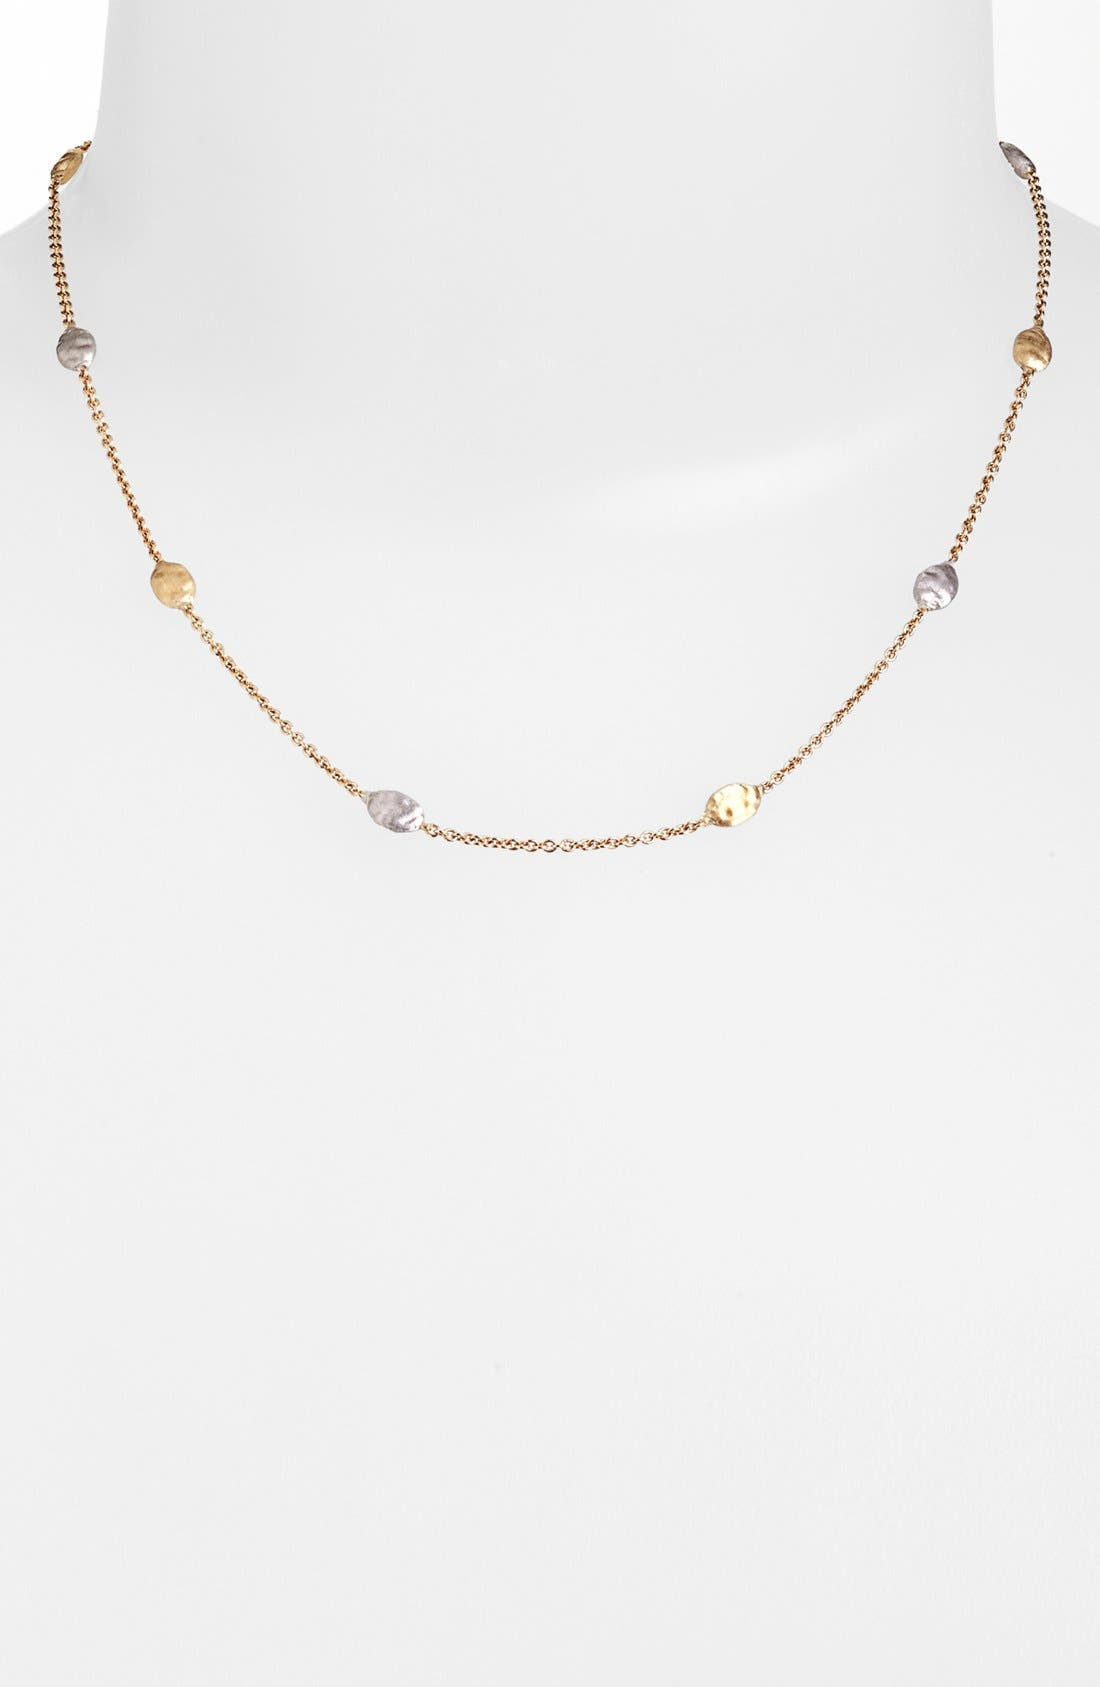 Alternate Image 1 Selected - Marco Bicego 'Siviglia' Two-Tone Necklace (Nordstrom Exclusive)